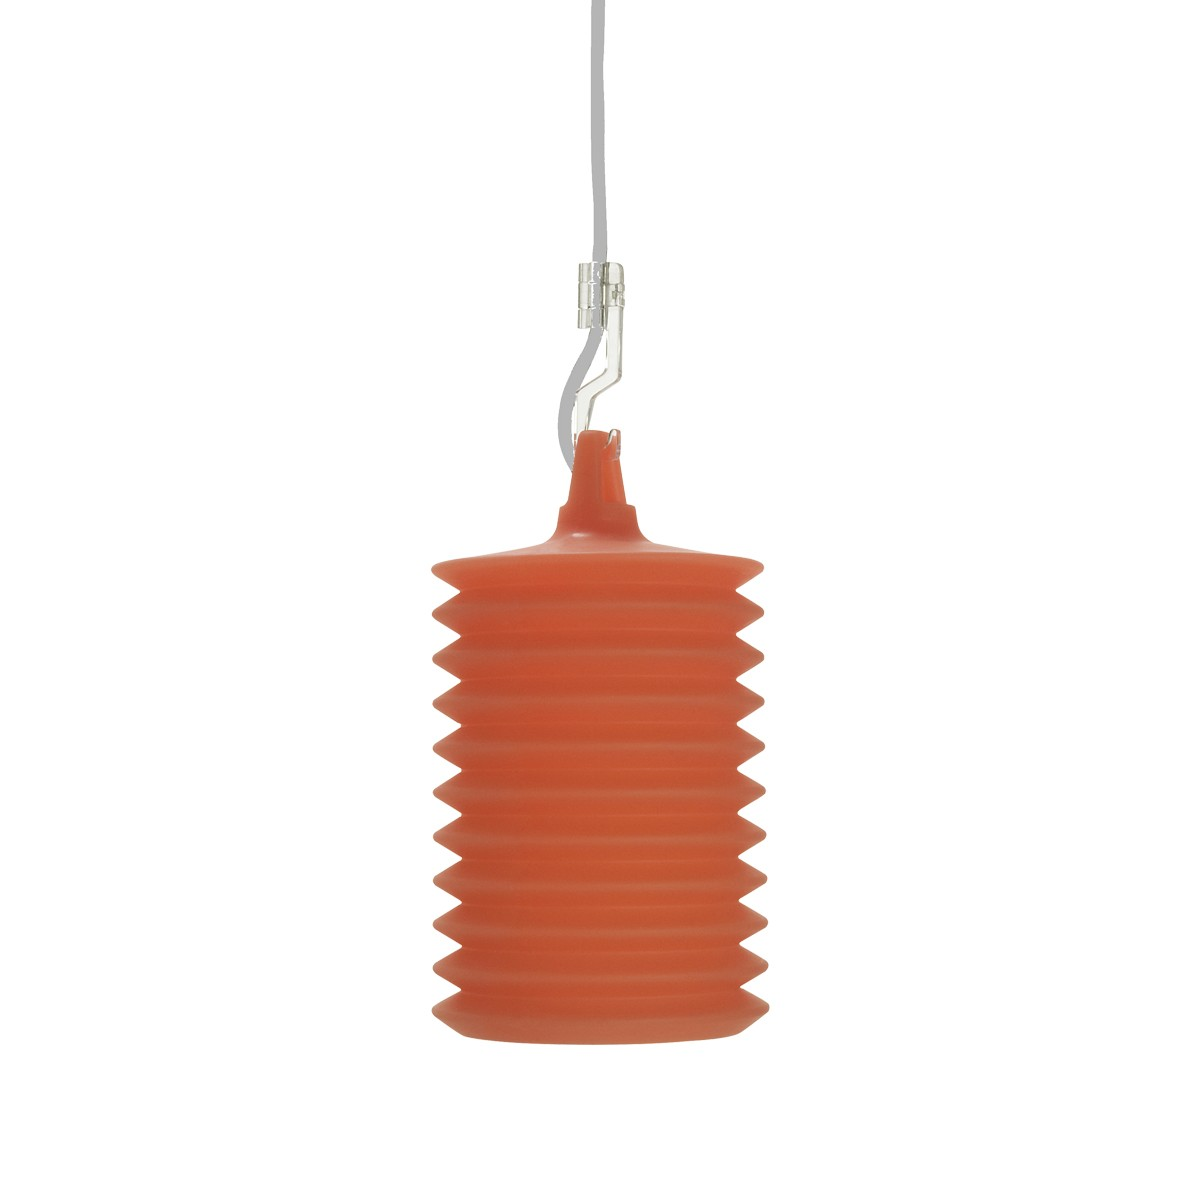 Rotaliana Lampion H1 Pendelleuchte, orange